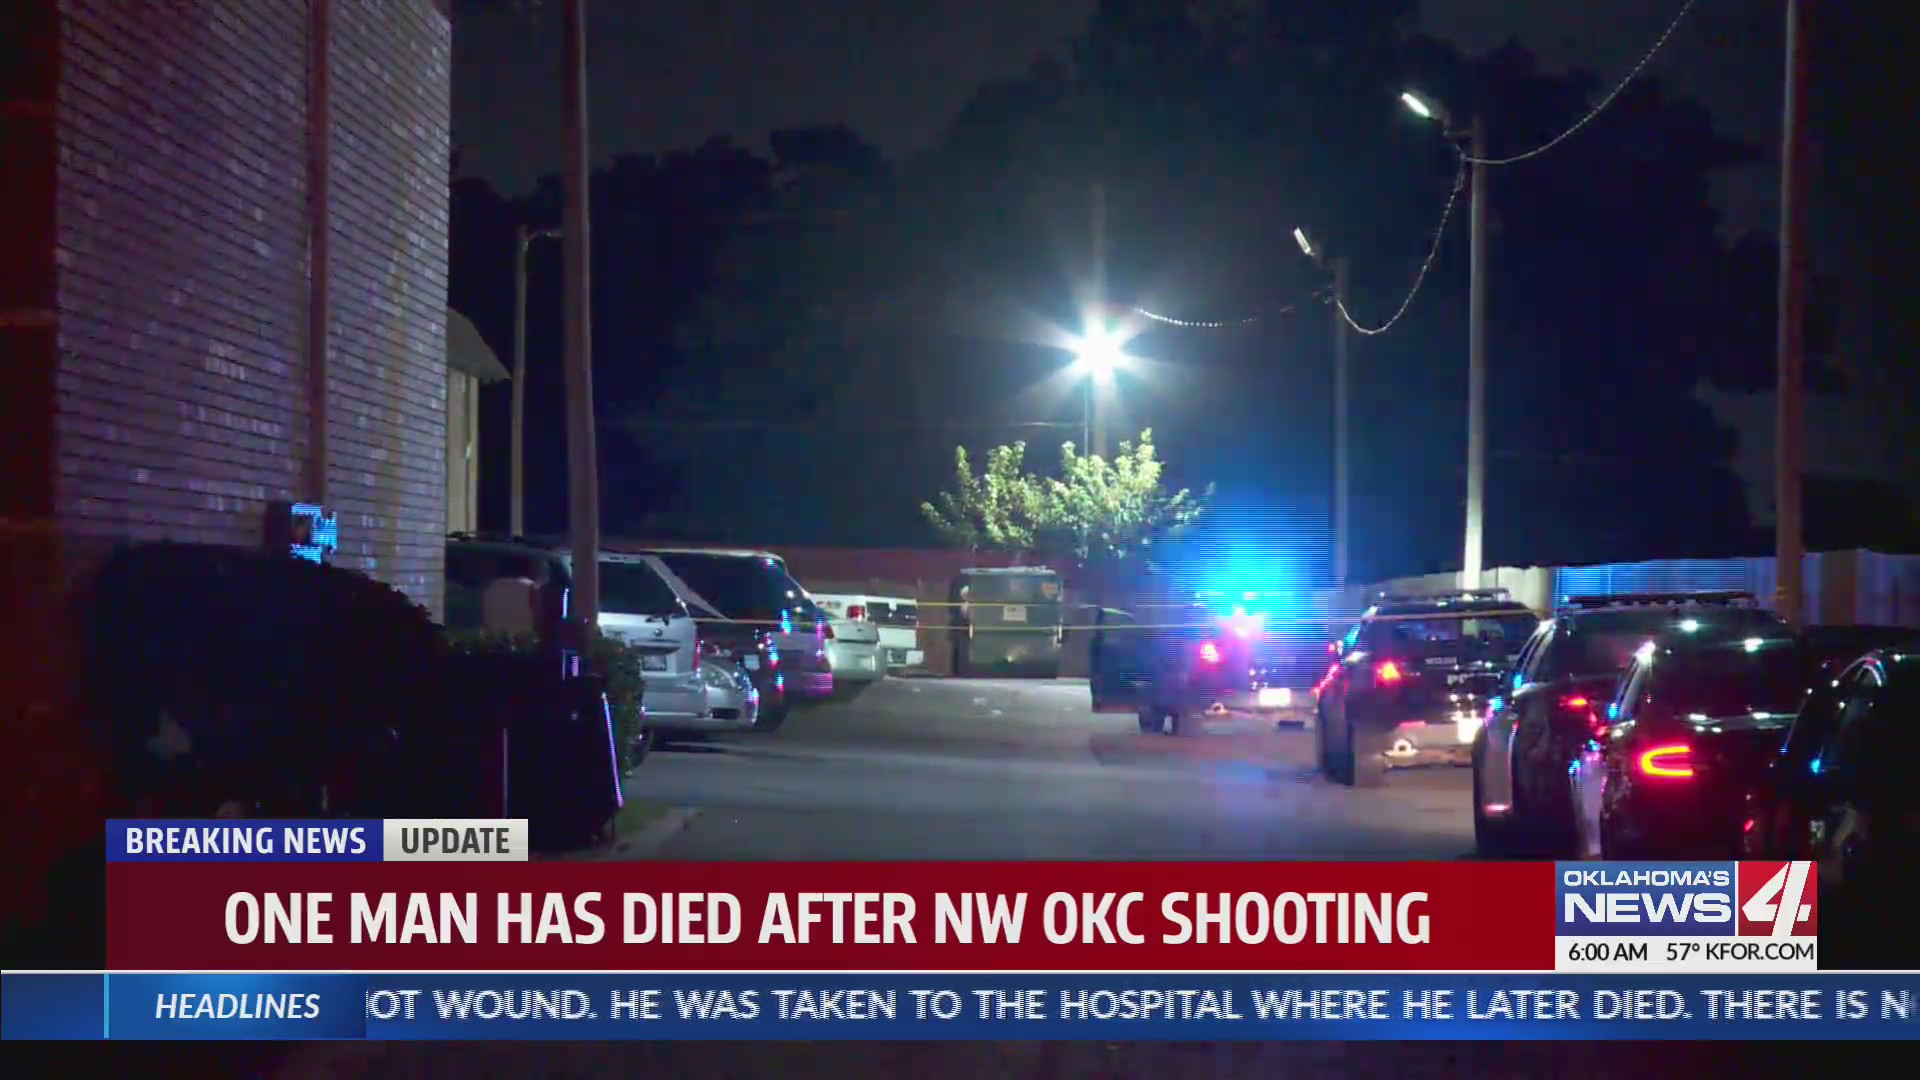 One man killed in NW OKC shooting